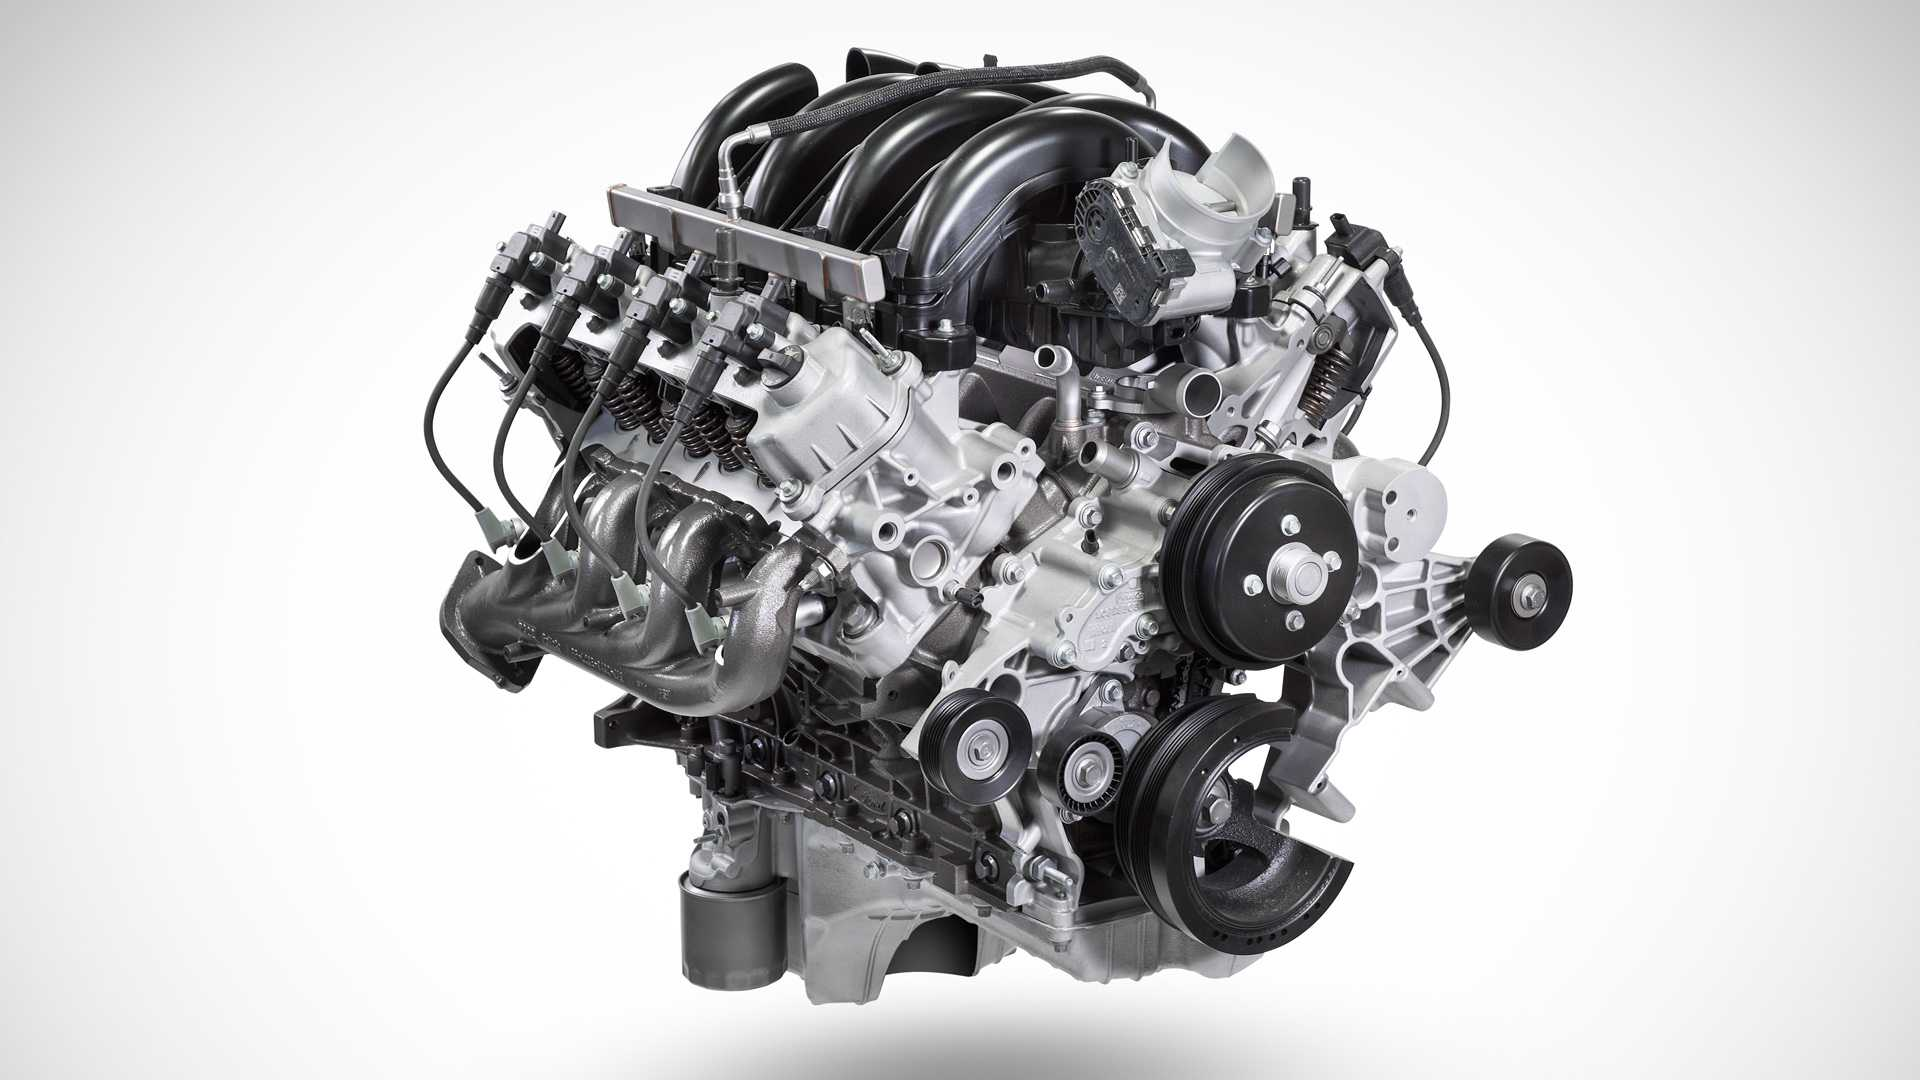 73 Best Review Ford V8 2020 First Drive for Ford V8 2020